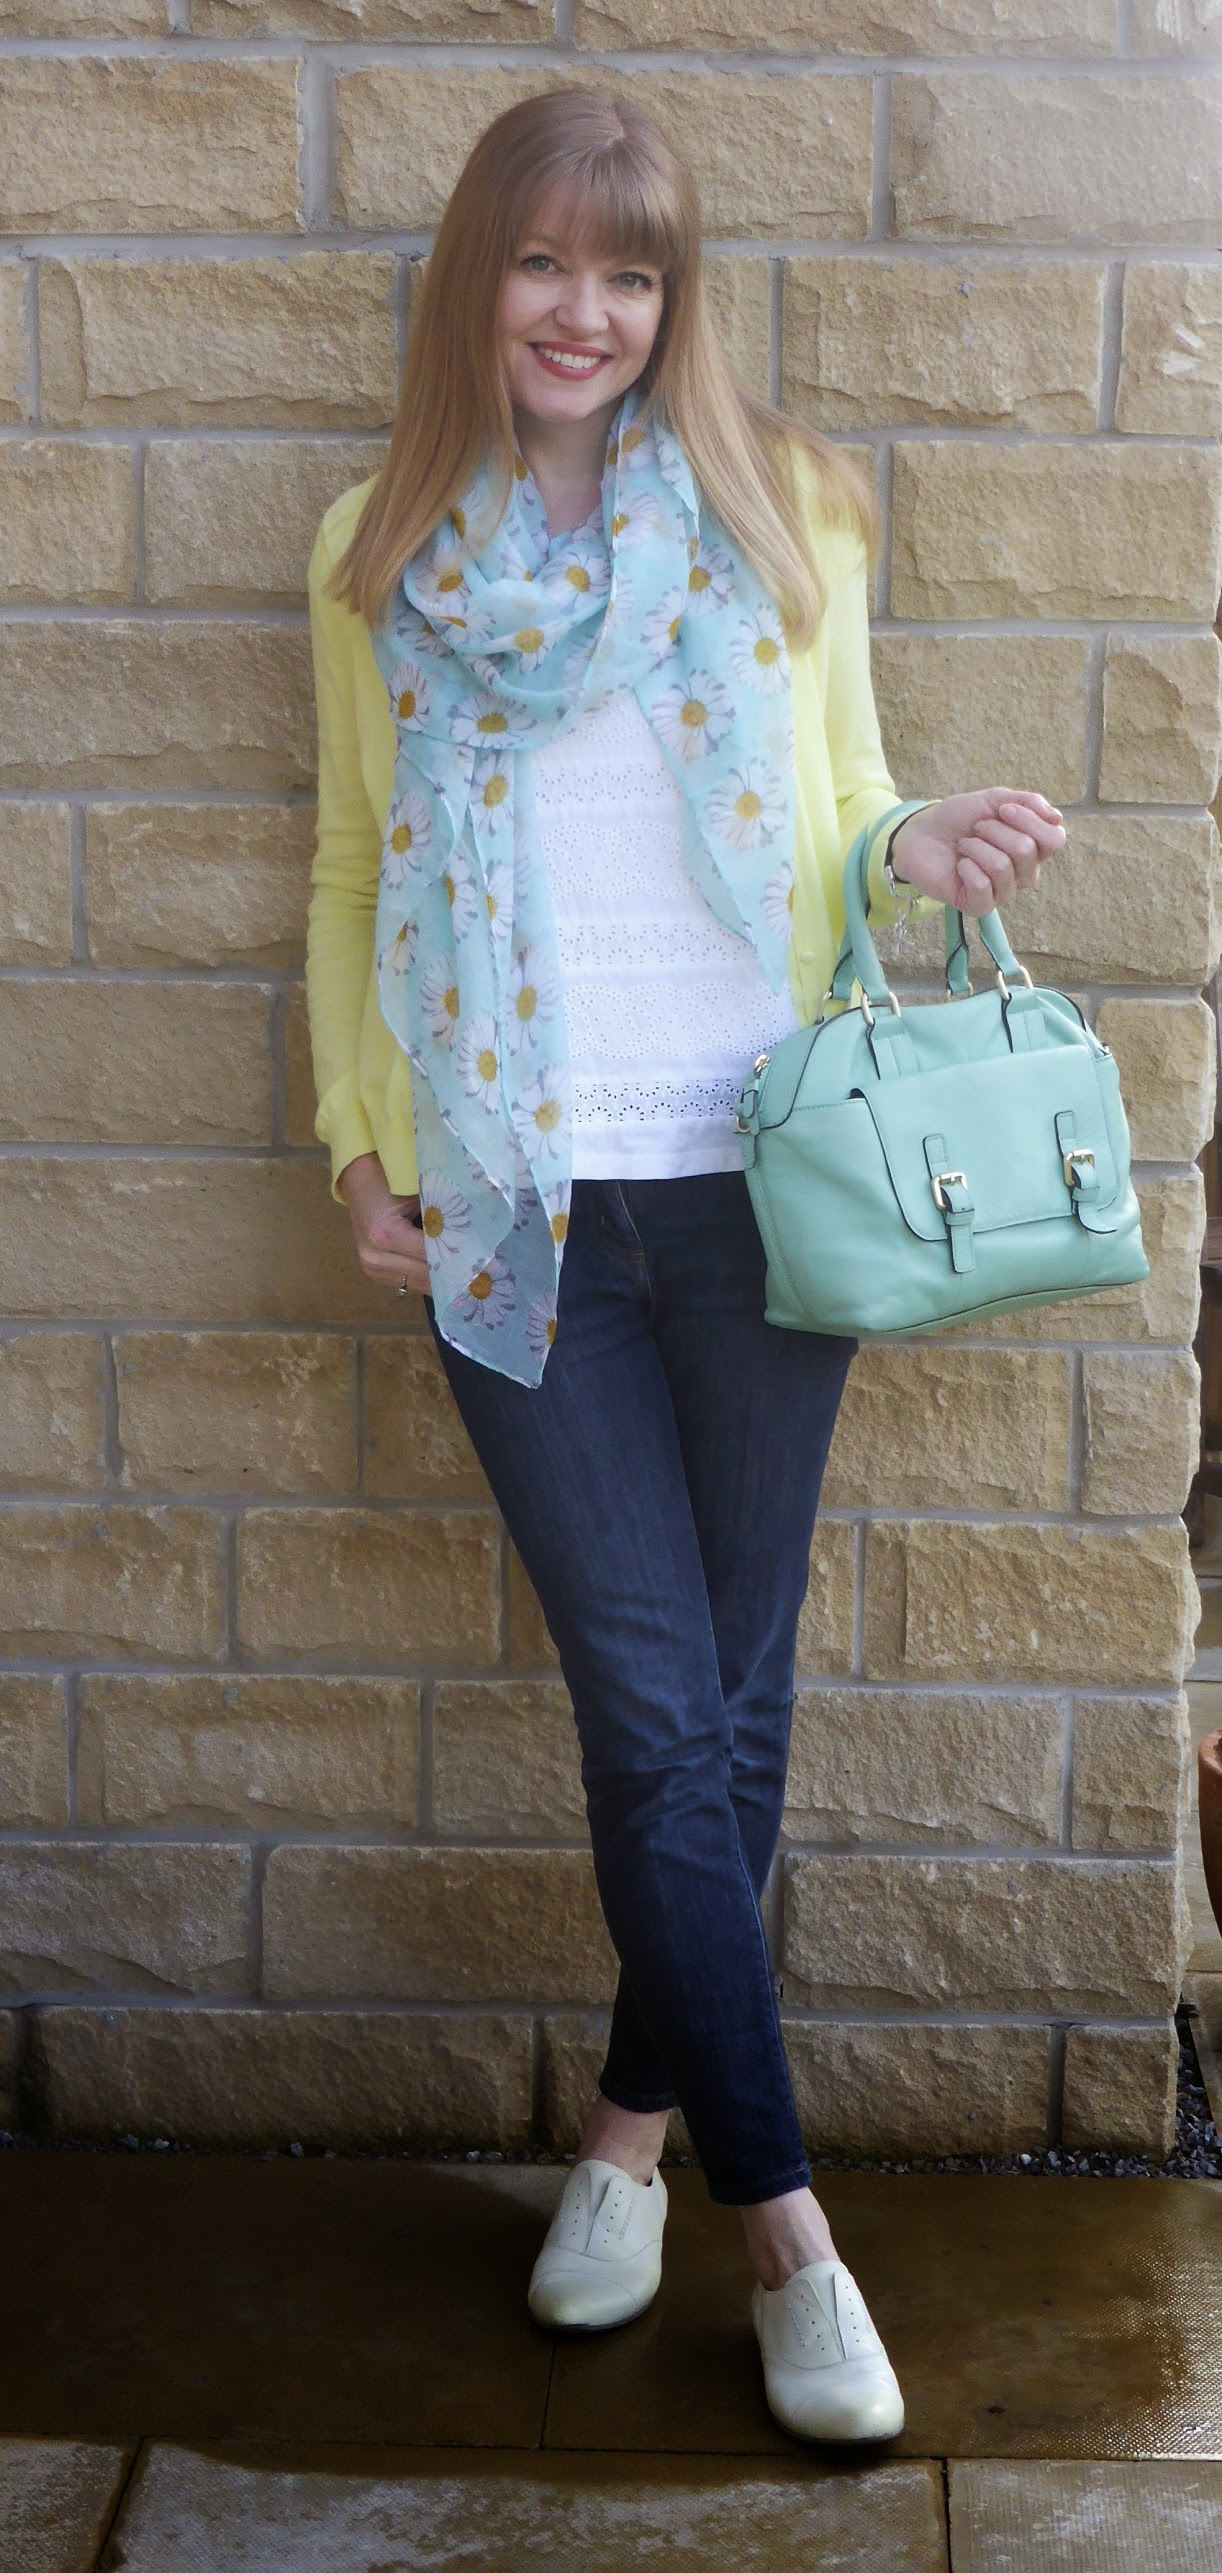 What Lizzy Loves, over 40 fashion blogger wearing white broderie tee, lemon cardigan, mint green daisy scarf, skinny jeans, yellow brogues, mint green bowling bag